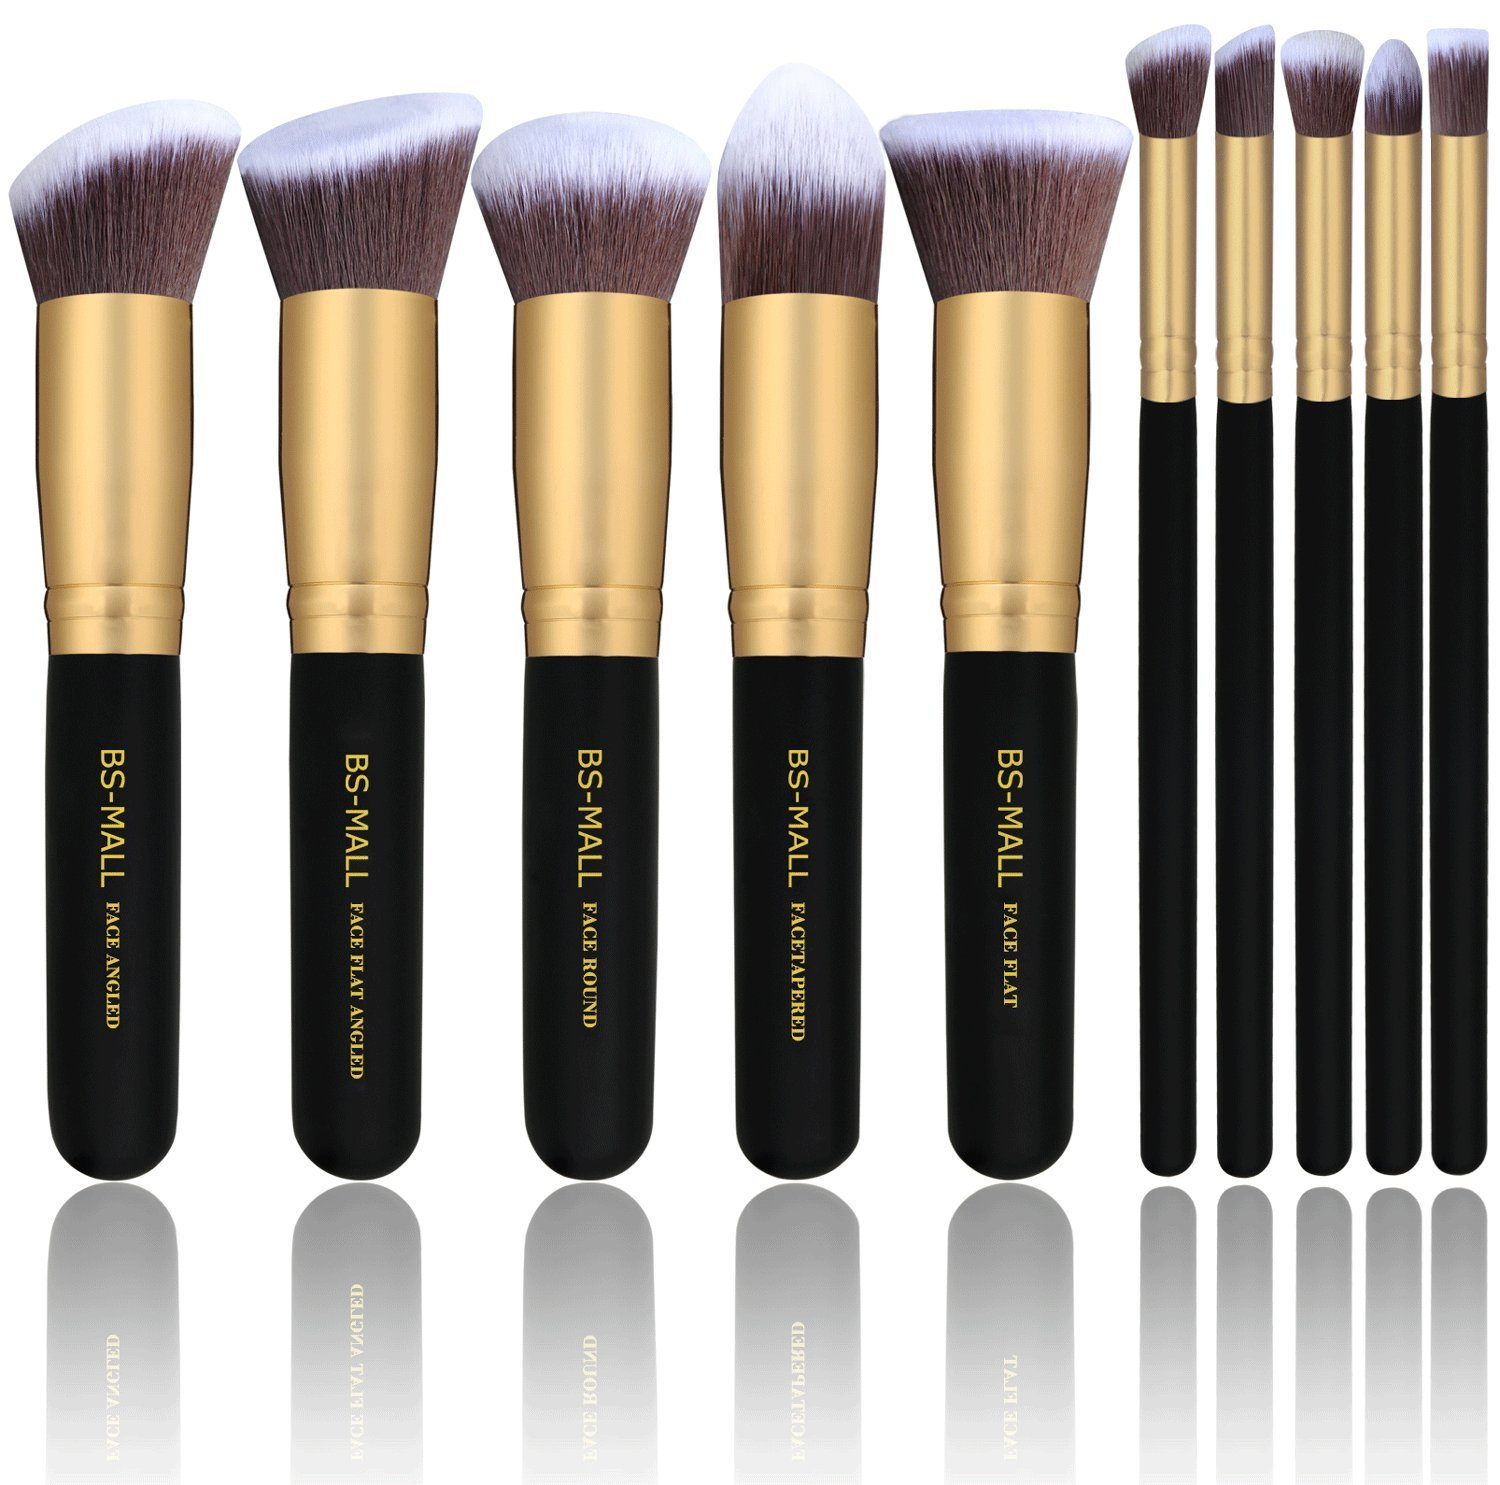 5) BS-MALL Makeup Brushes for Regular Makeup